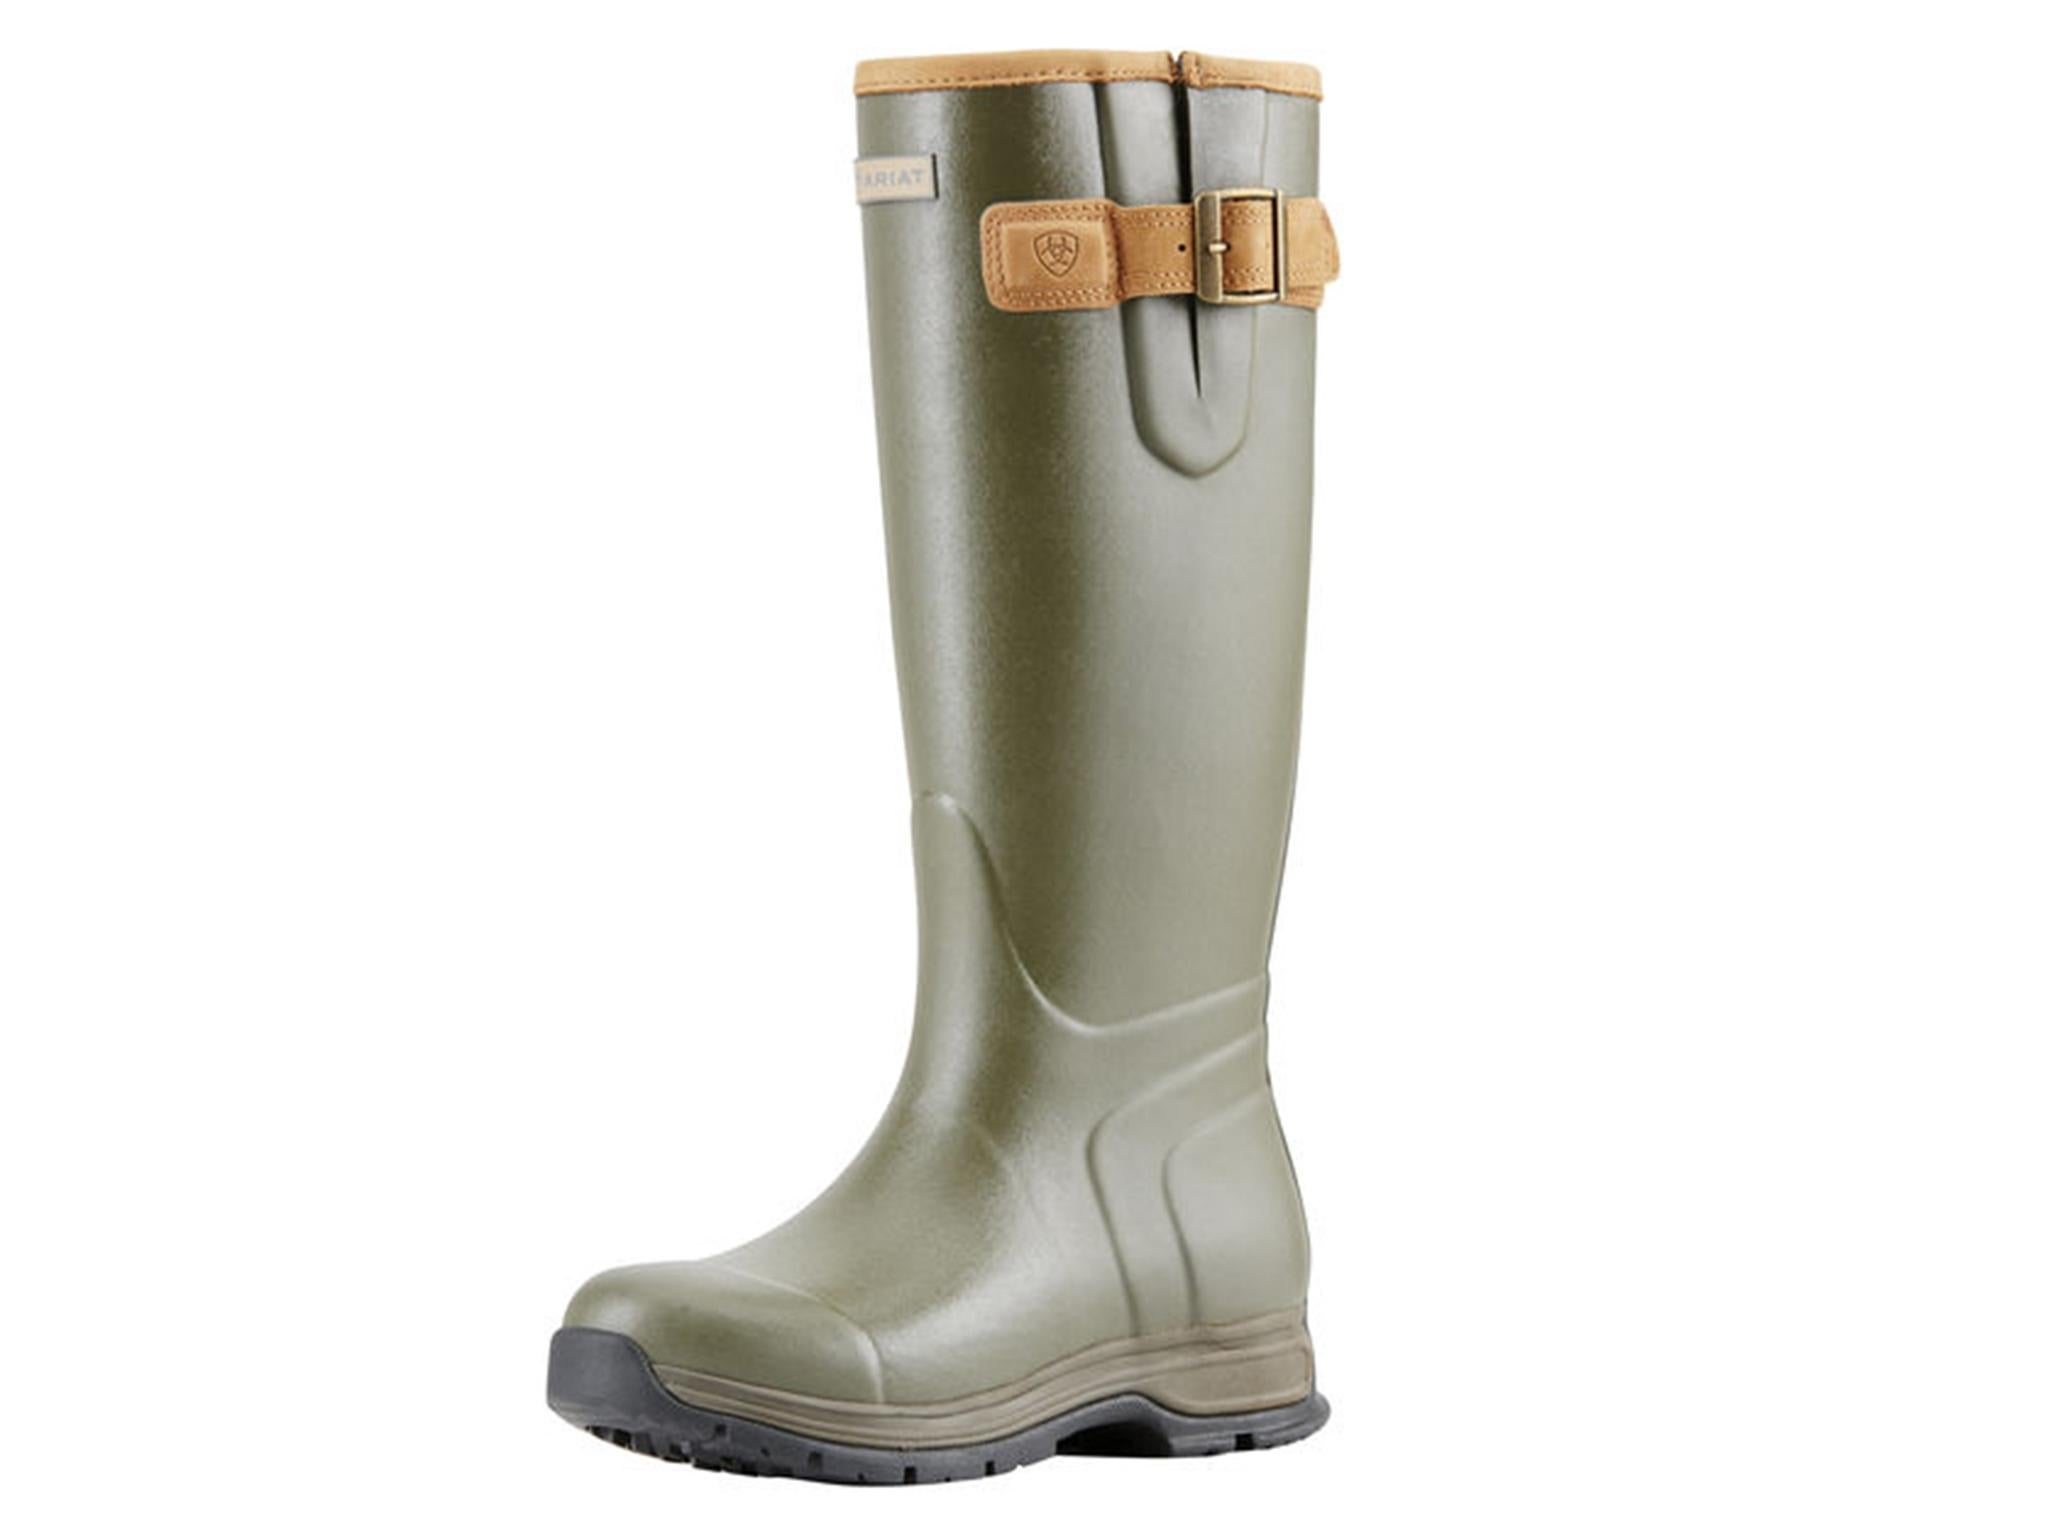 buy online e8803 9eb4e Best festival wellies that are comfortable, waterproof and ...